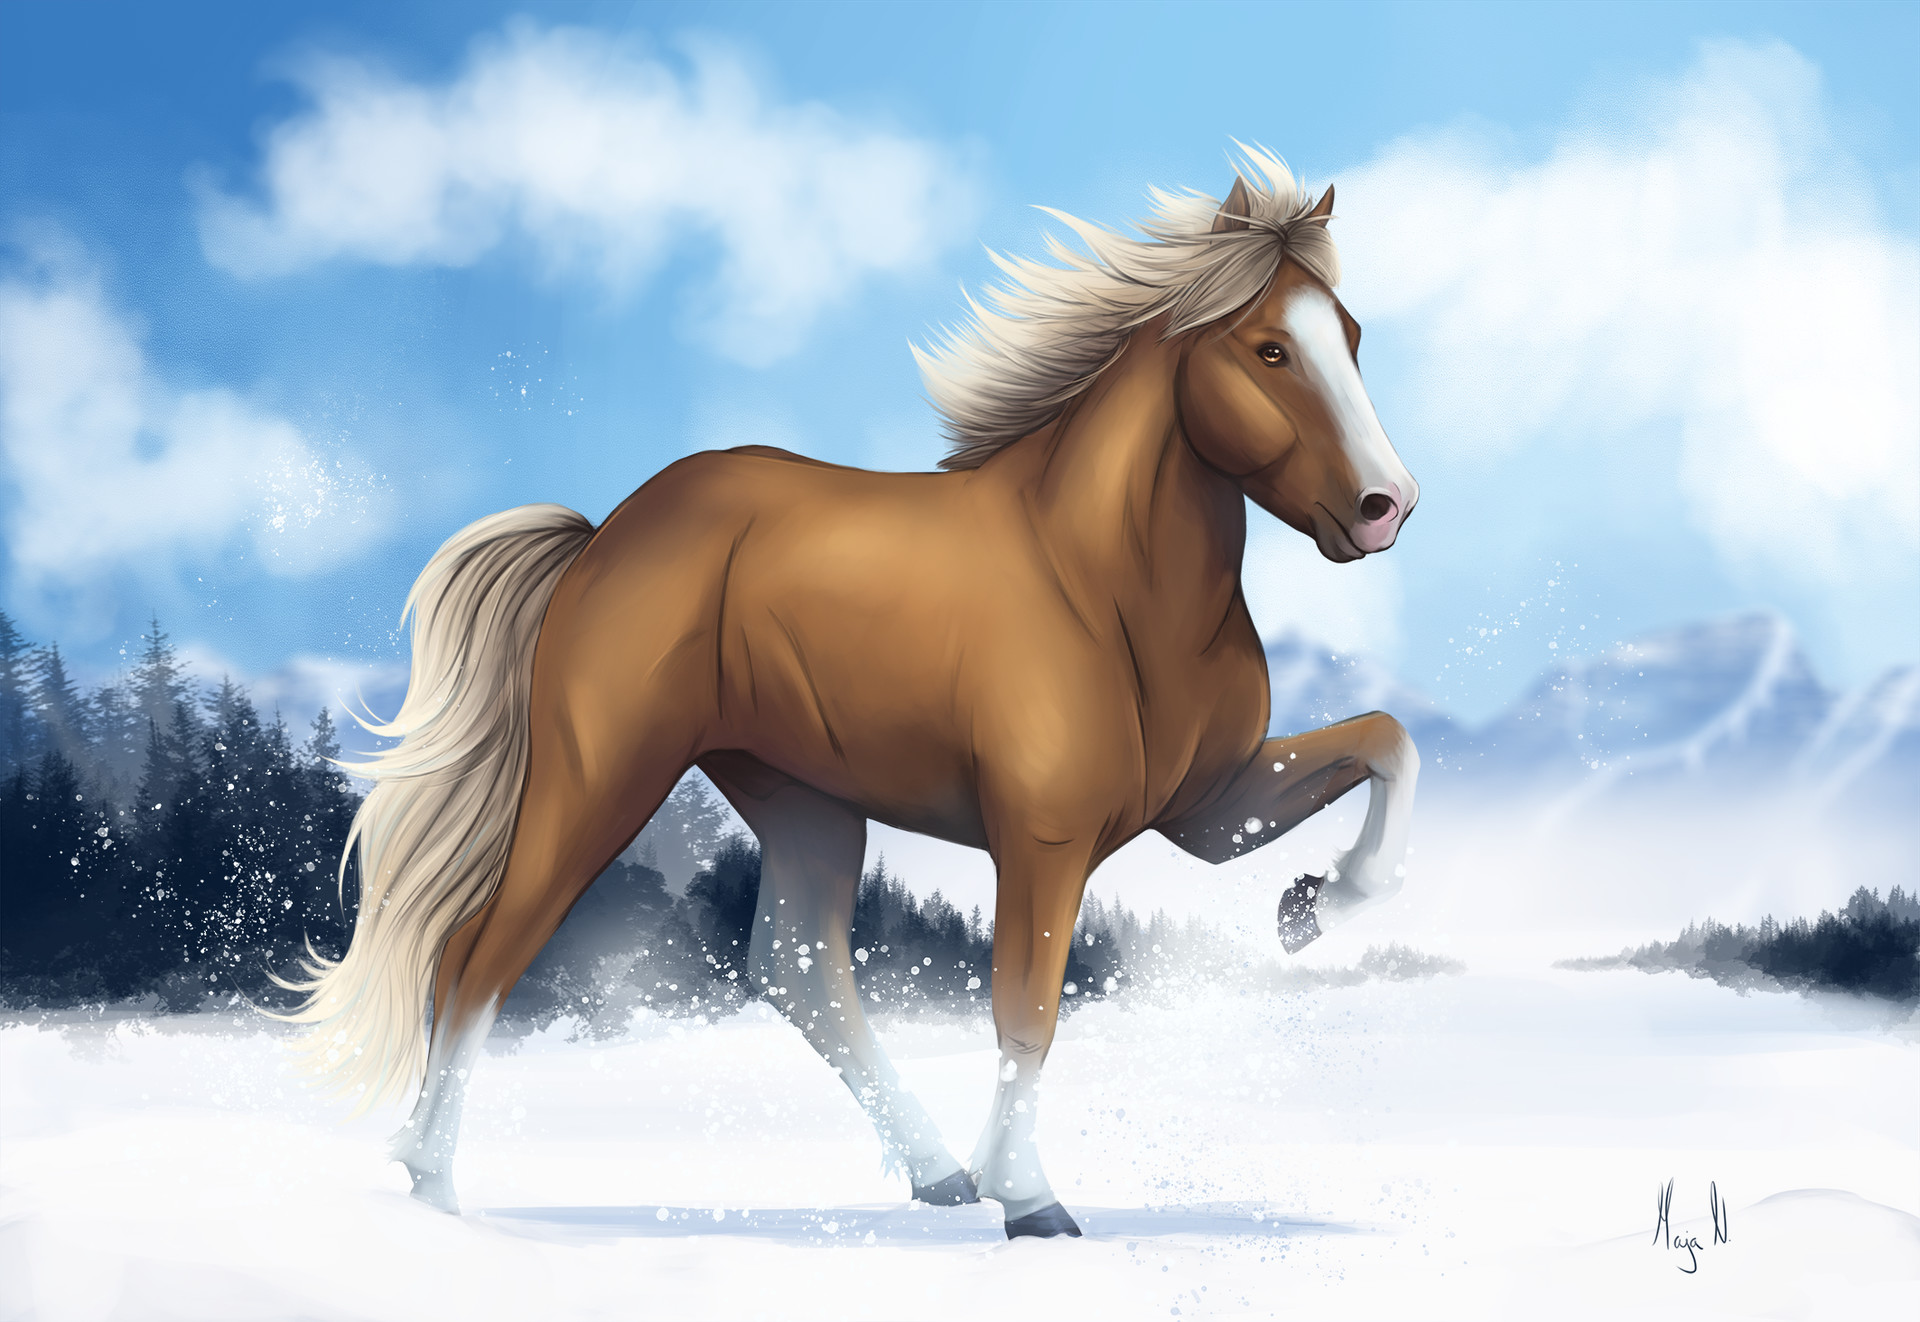 Maja Nygjelten The Horse From The Land Of Ice And Fire